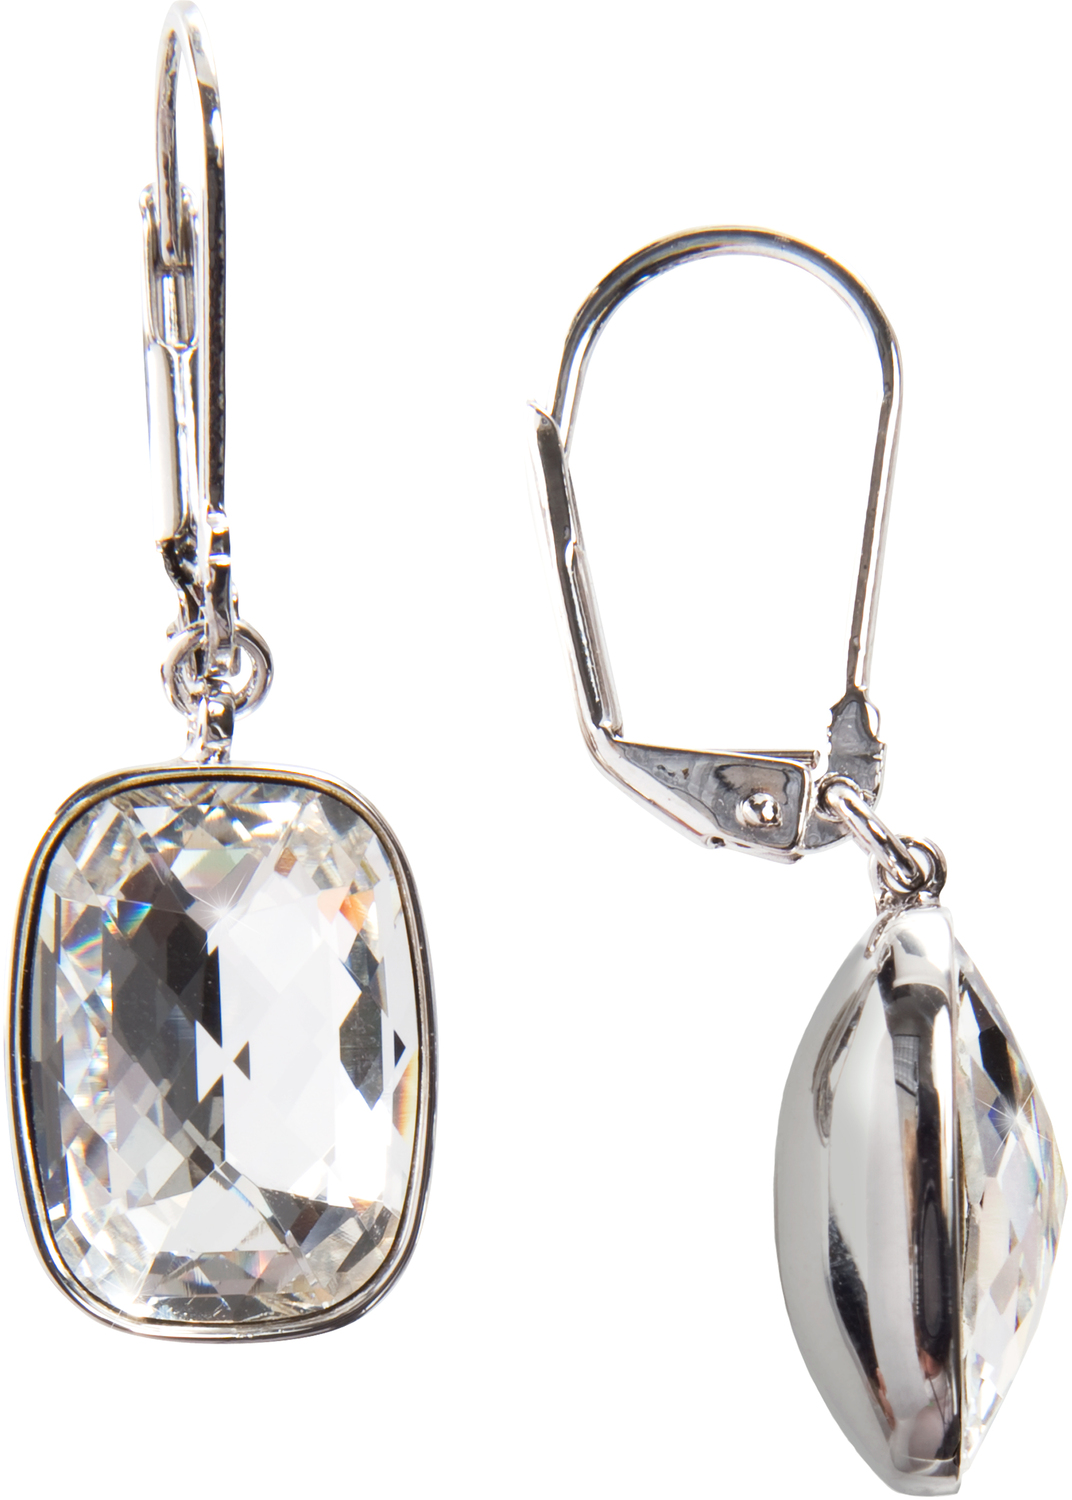 ab27a0275 Kate Crystal by H2Z Made with Swarovski Elements - Kate Crystal - 0.375